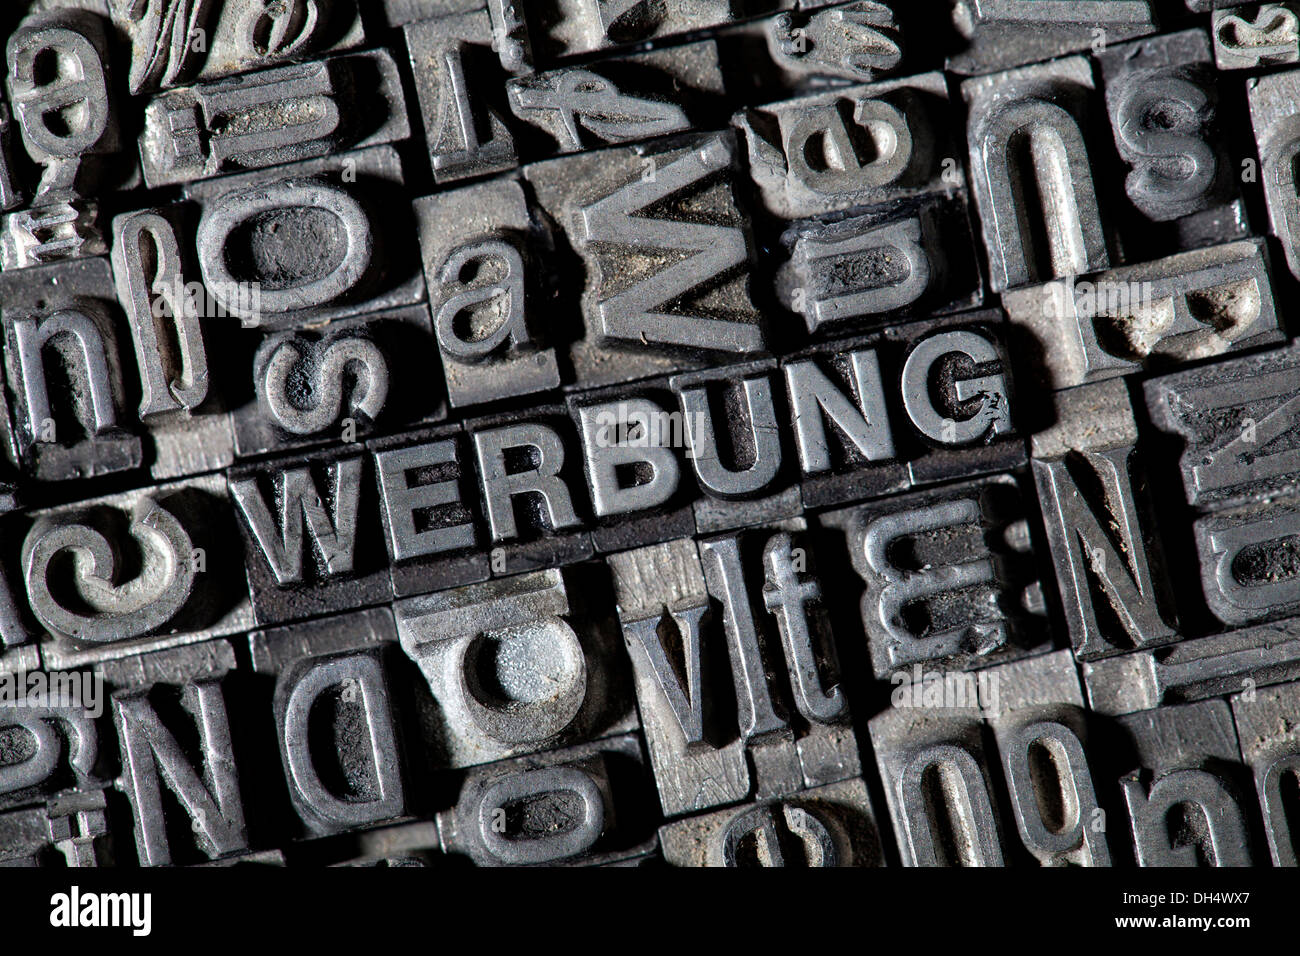 Old lead letters forming the word WERBUNG, German for advertisement - Stock Image